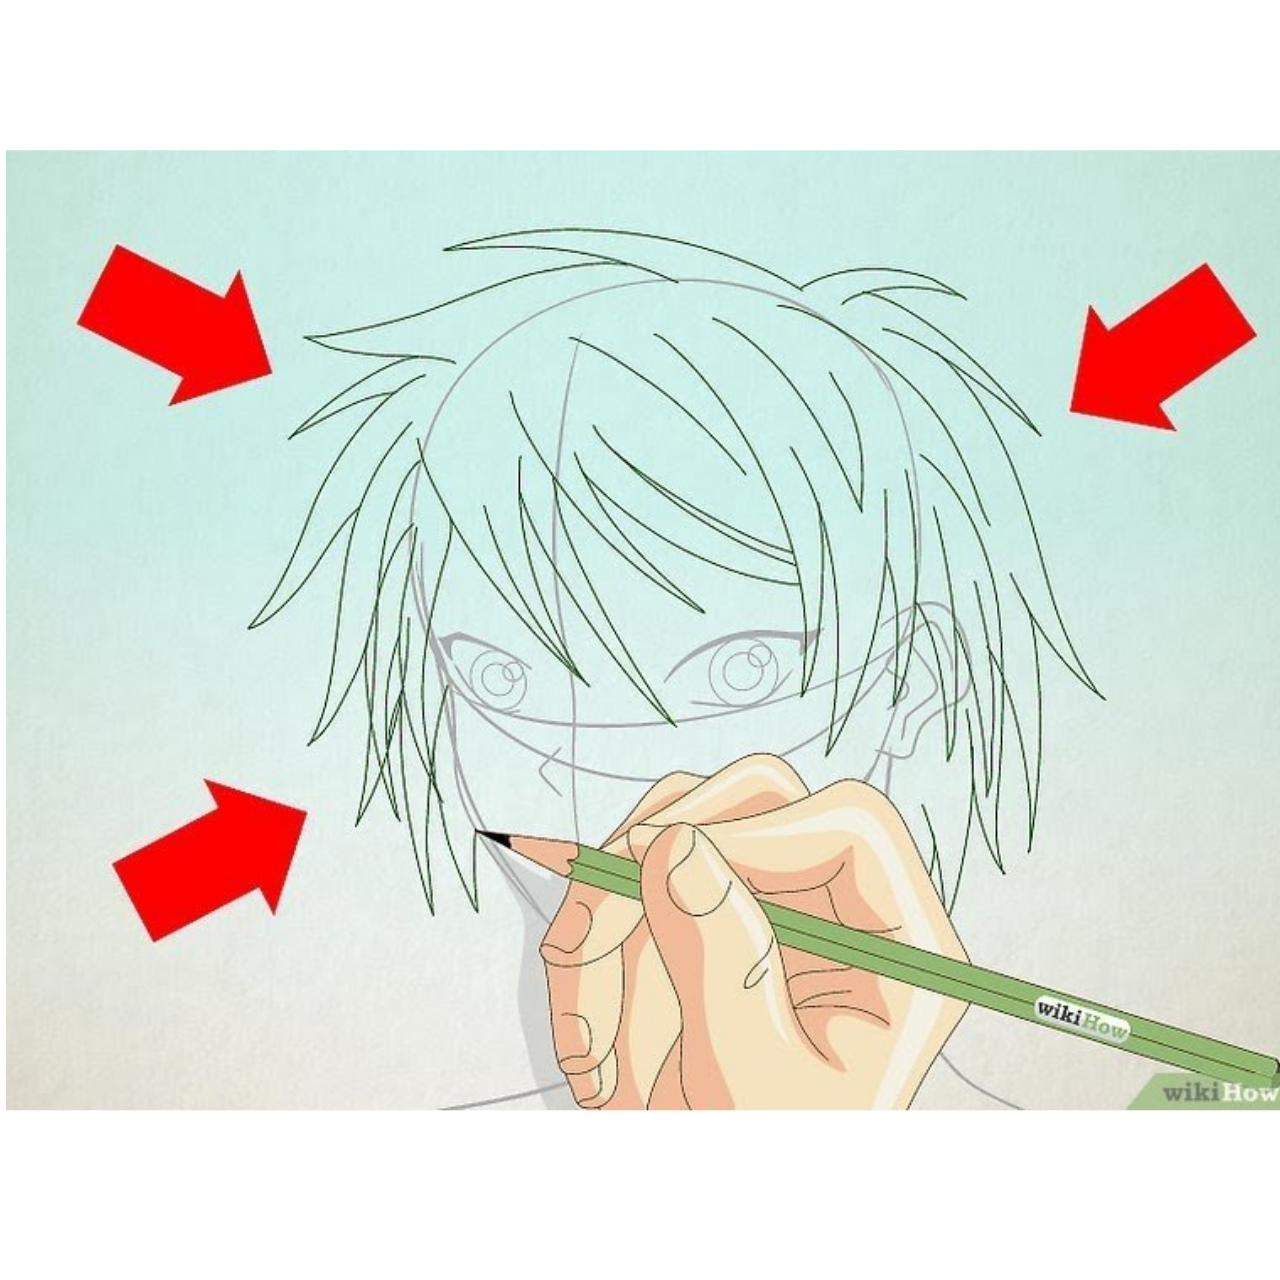 Wikihow drawing. How to draw a